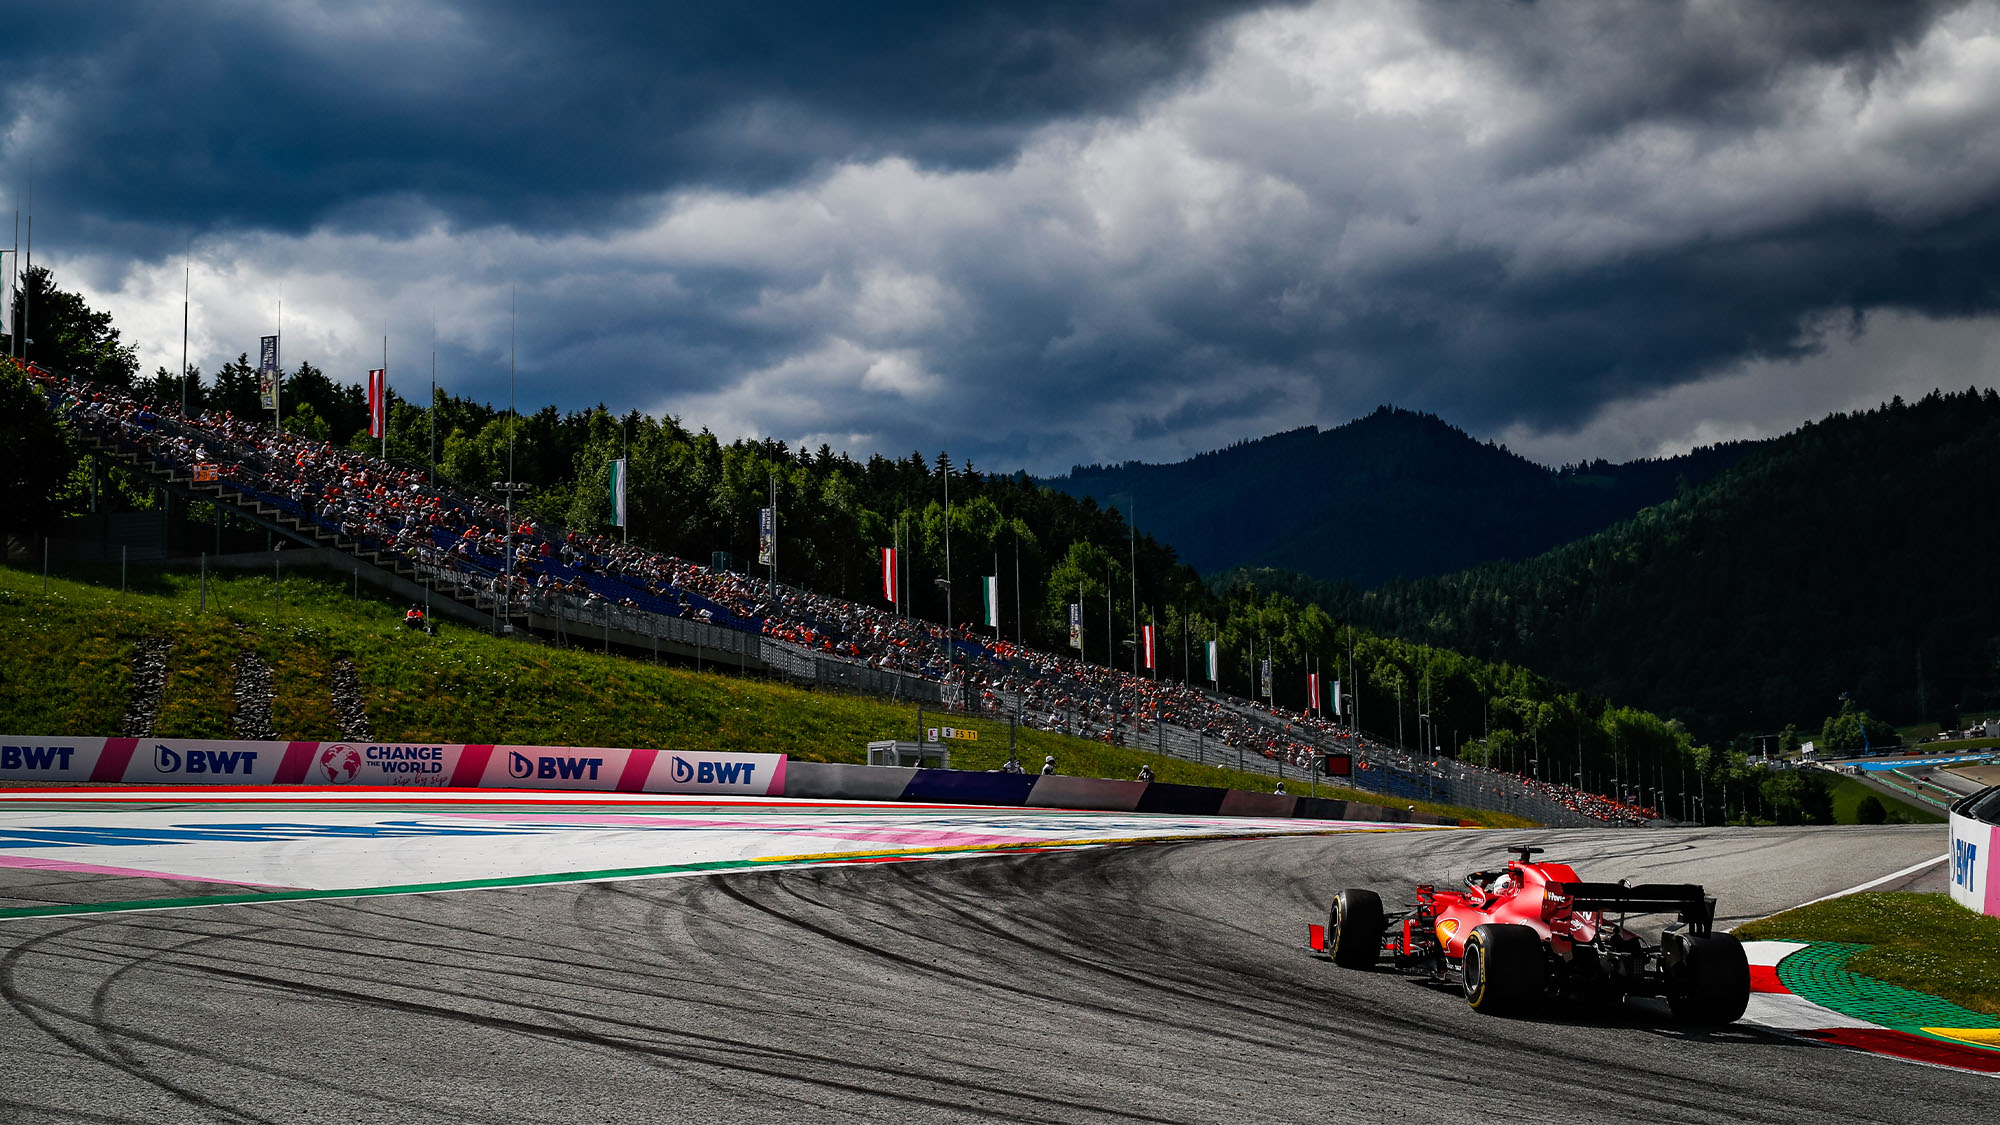 Charles Leclerc under dark clouds at the 2021 Styrian Grand Prix